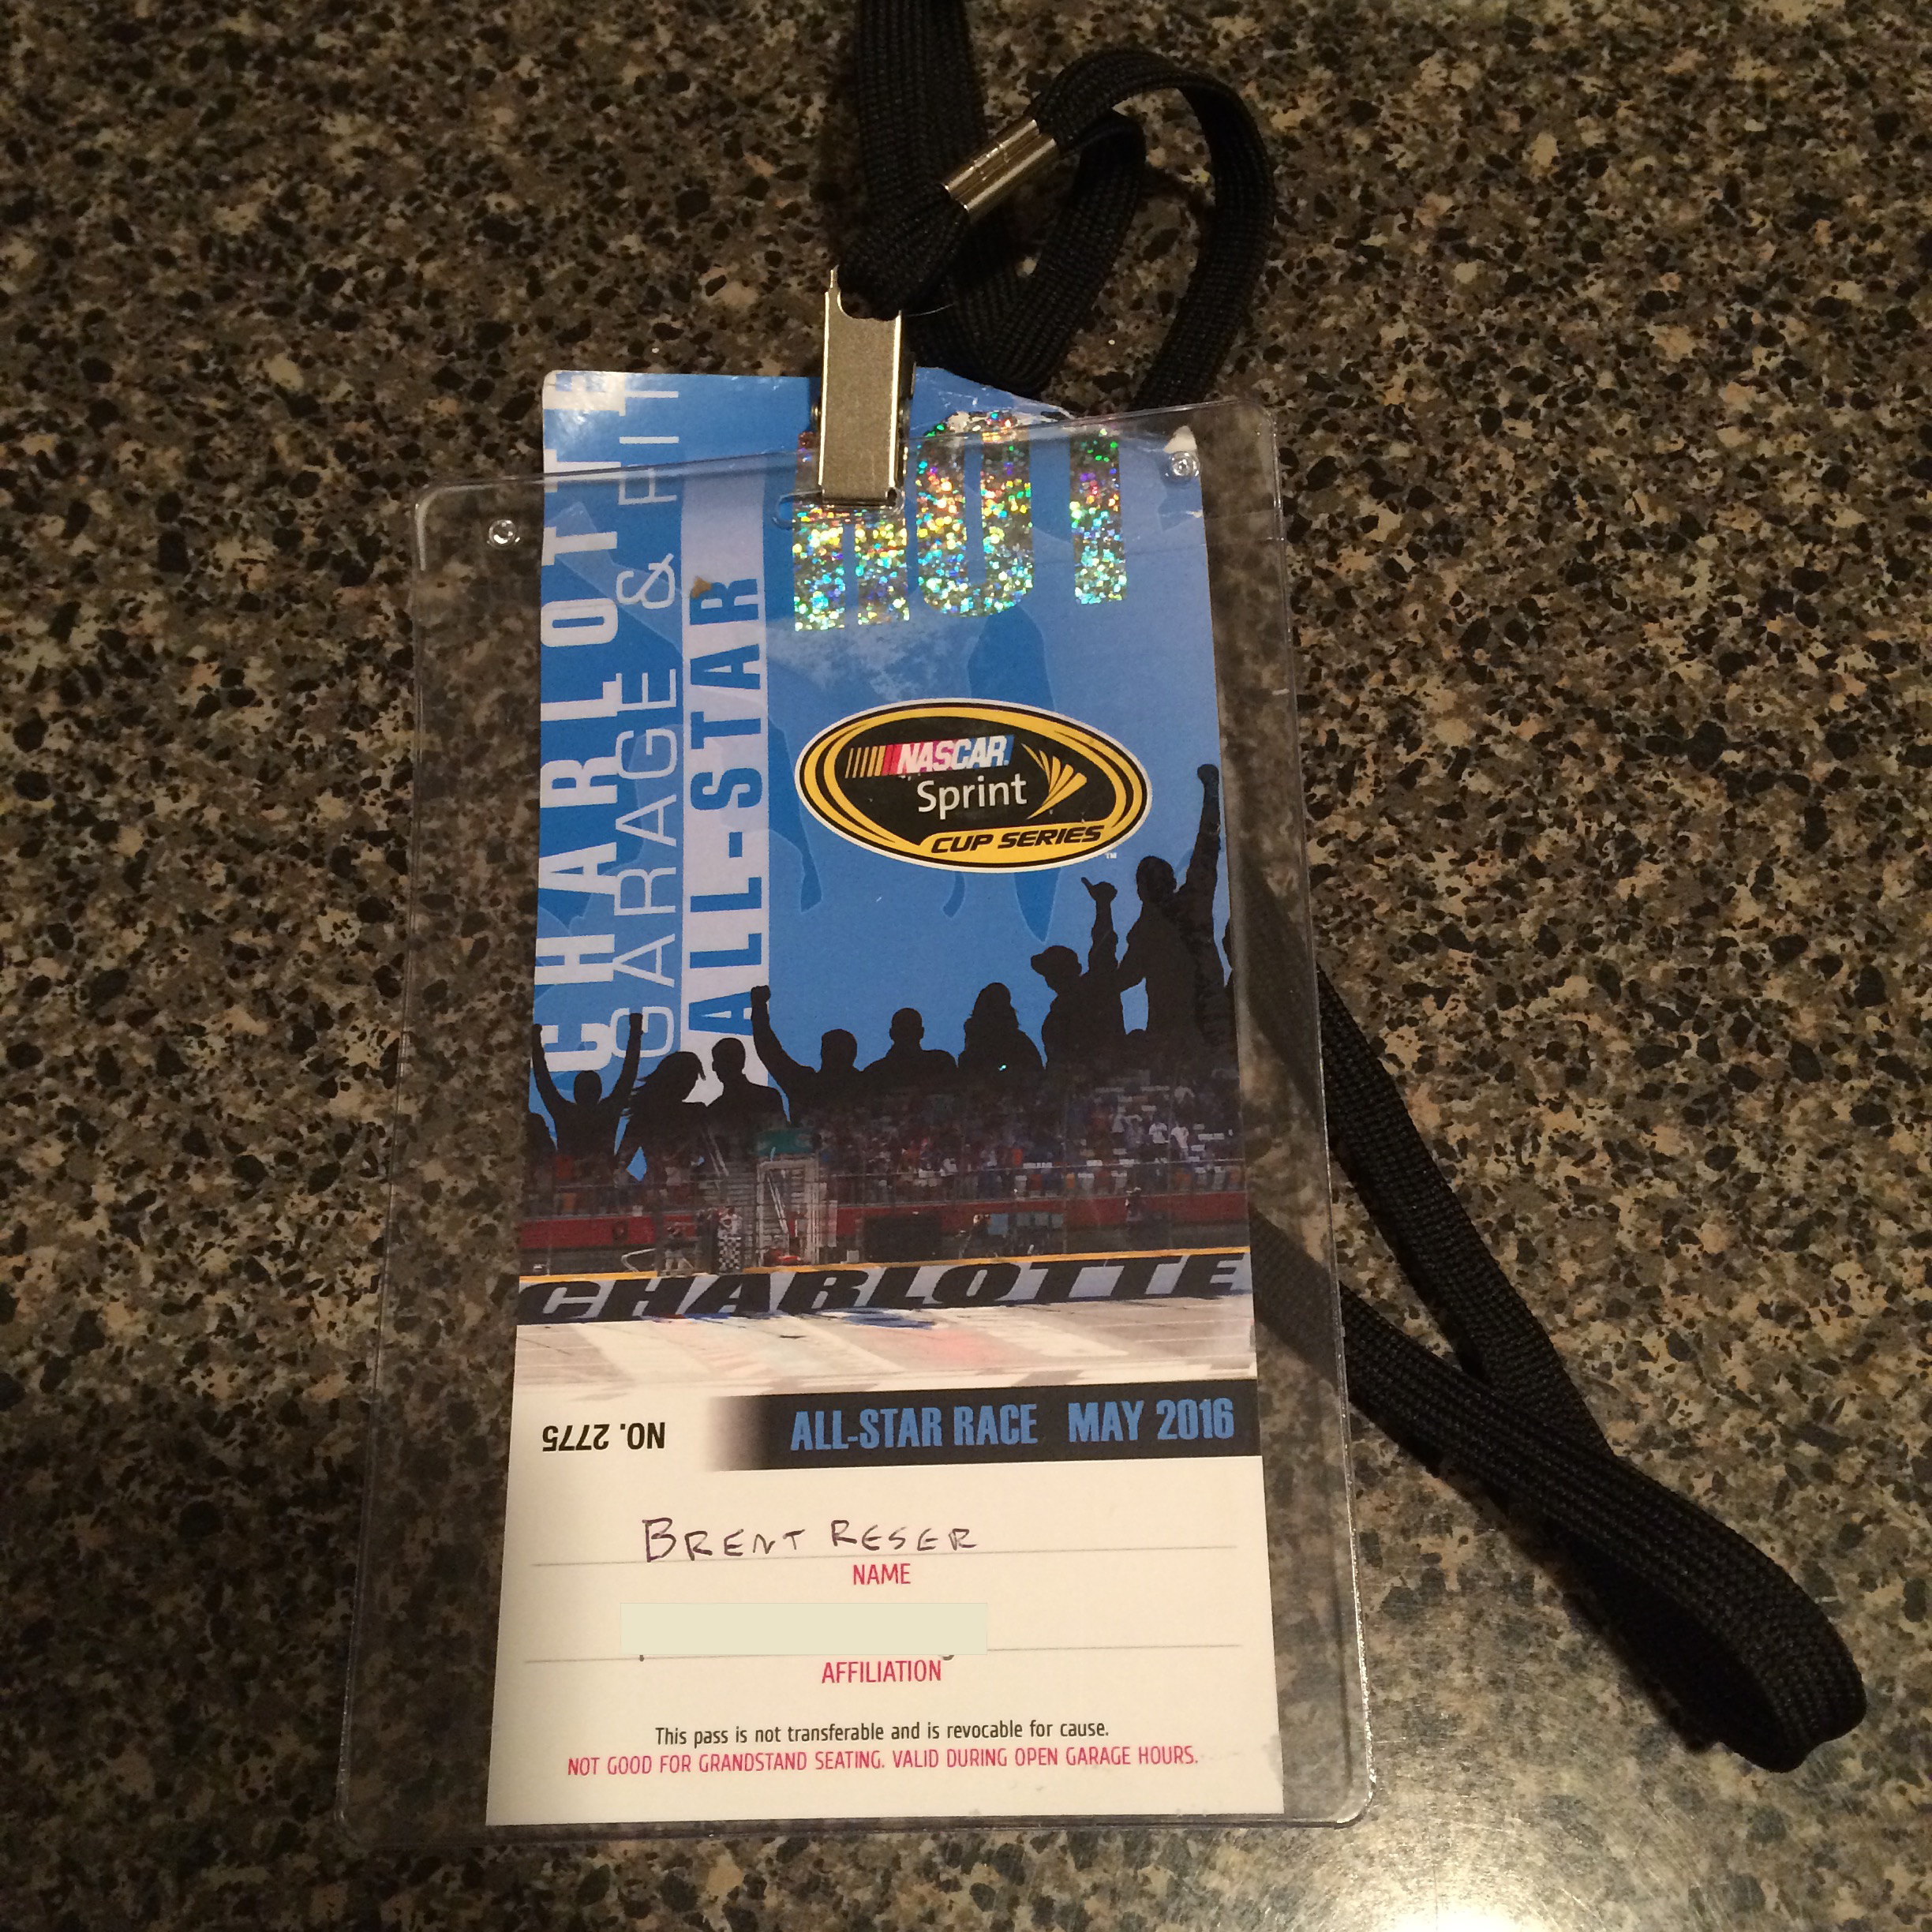 My credential from last Friday.